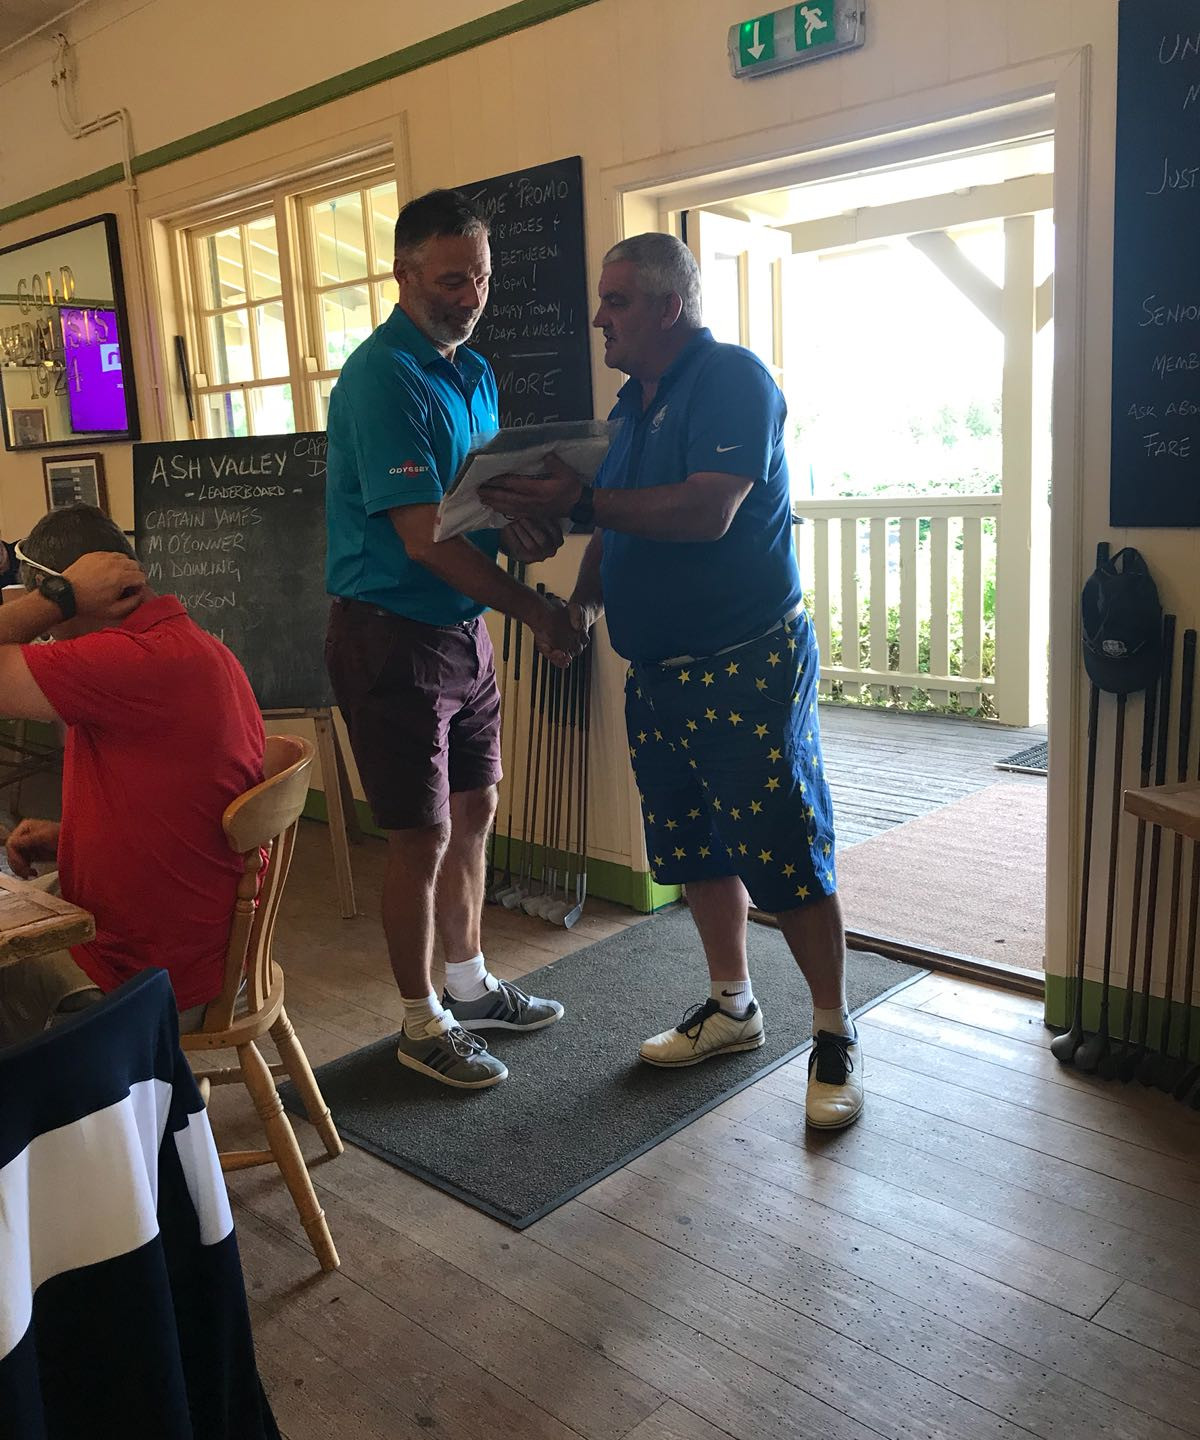 3rd place - Mark Dowling